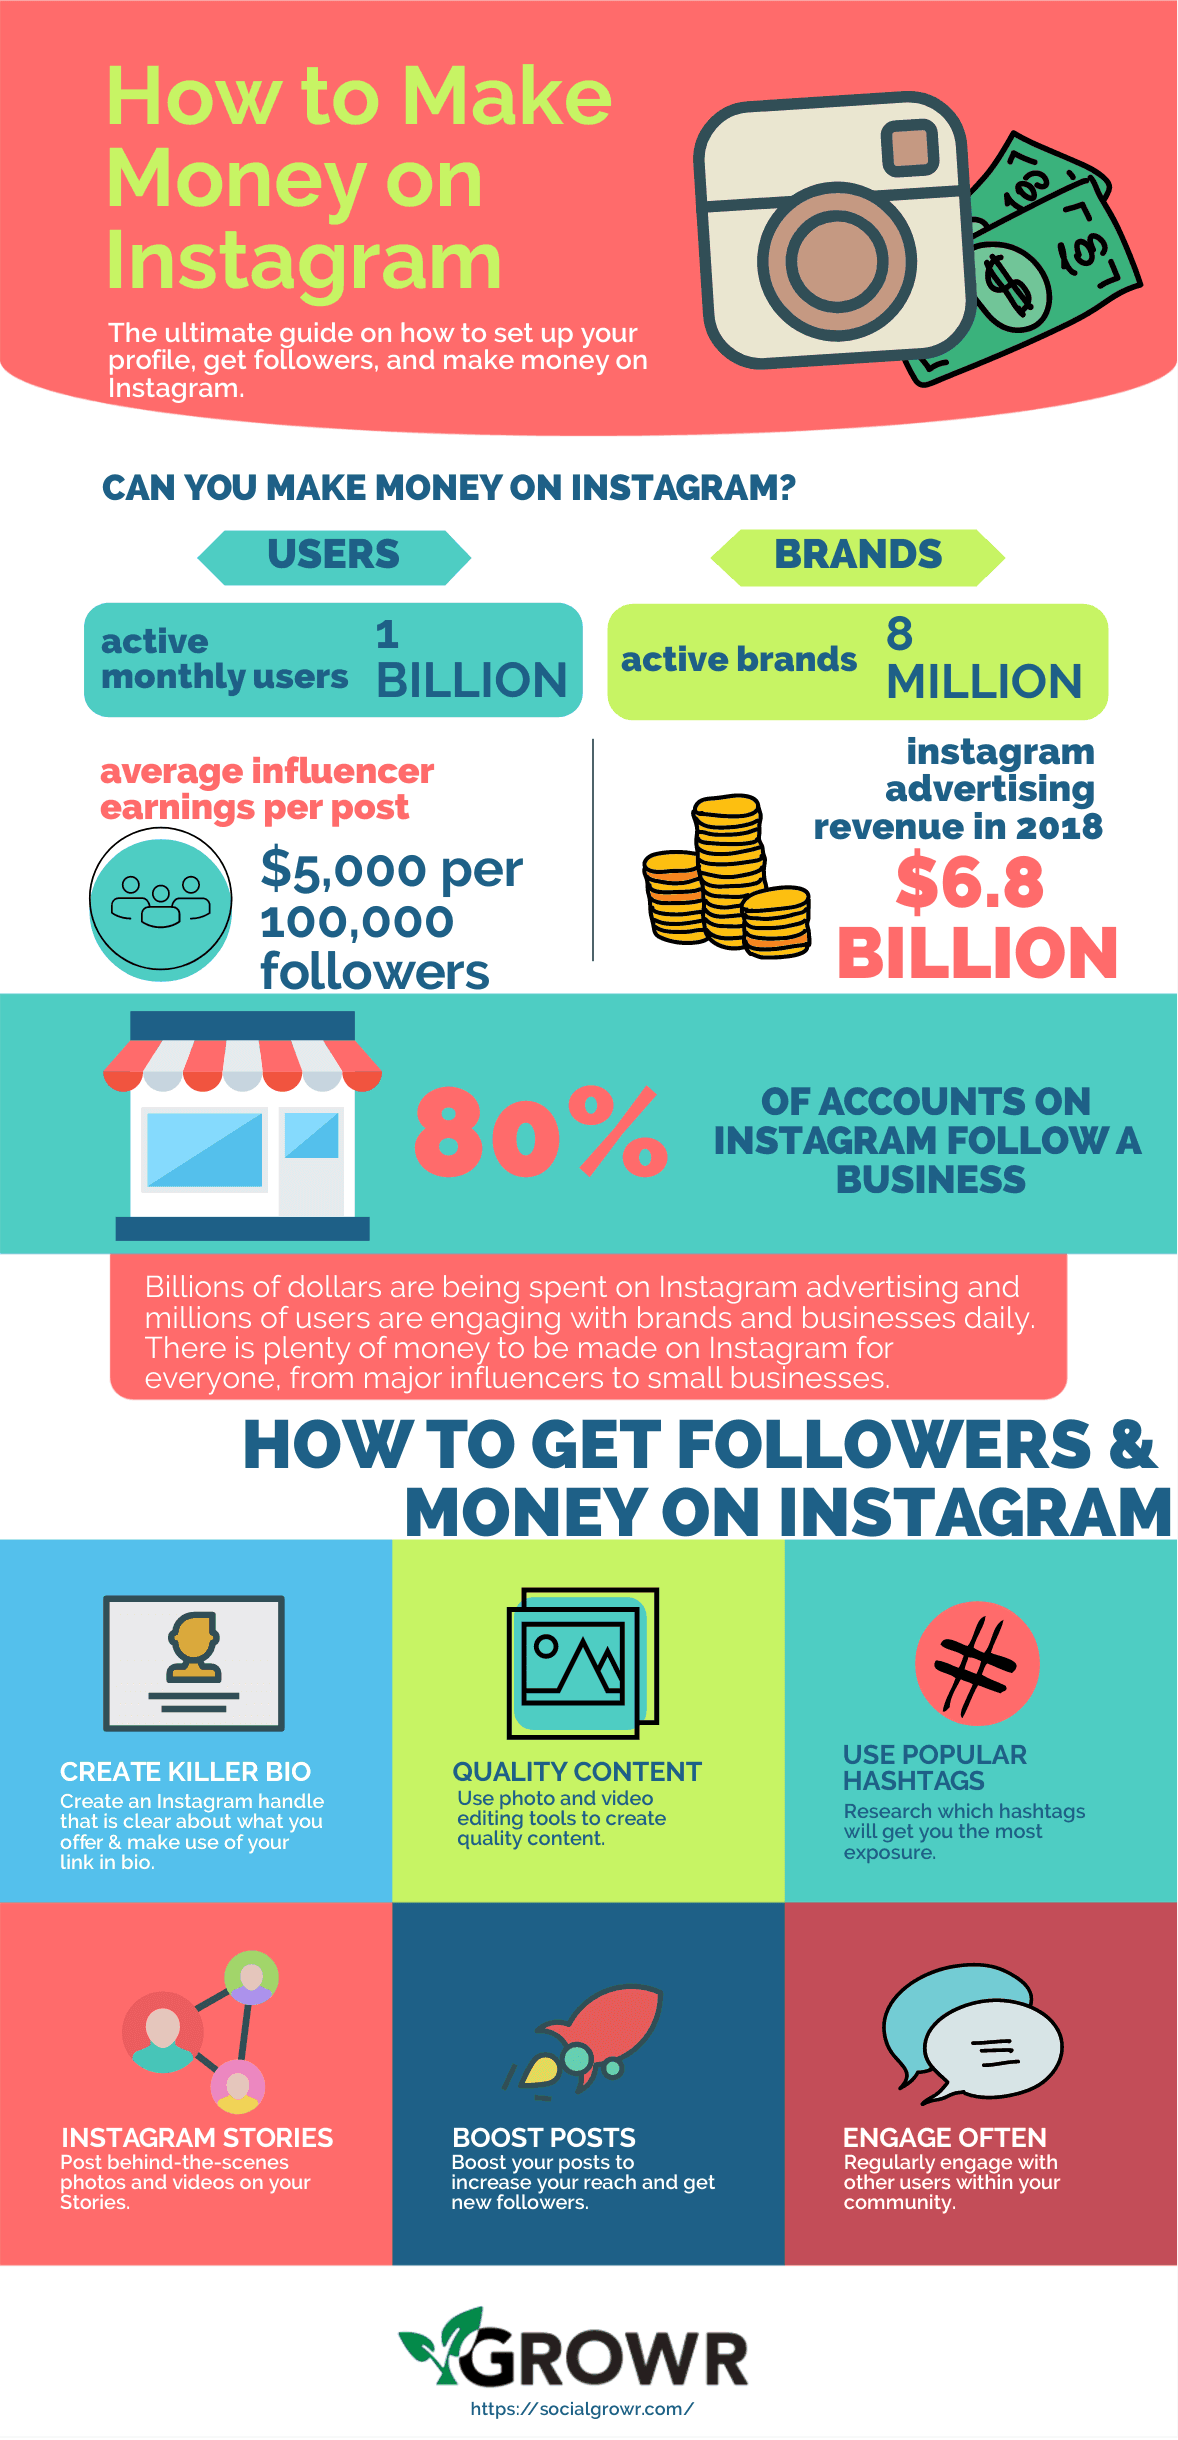 For more tips and tricks on how to make money on Instagram, check out this great infographic!